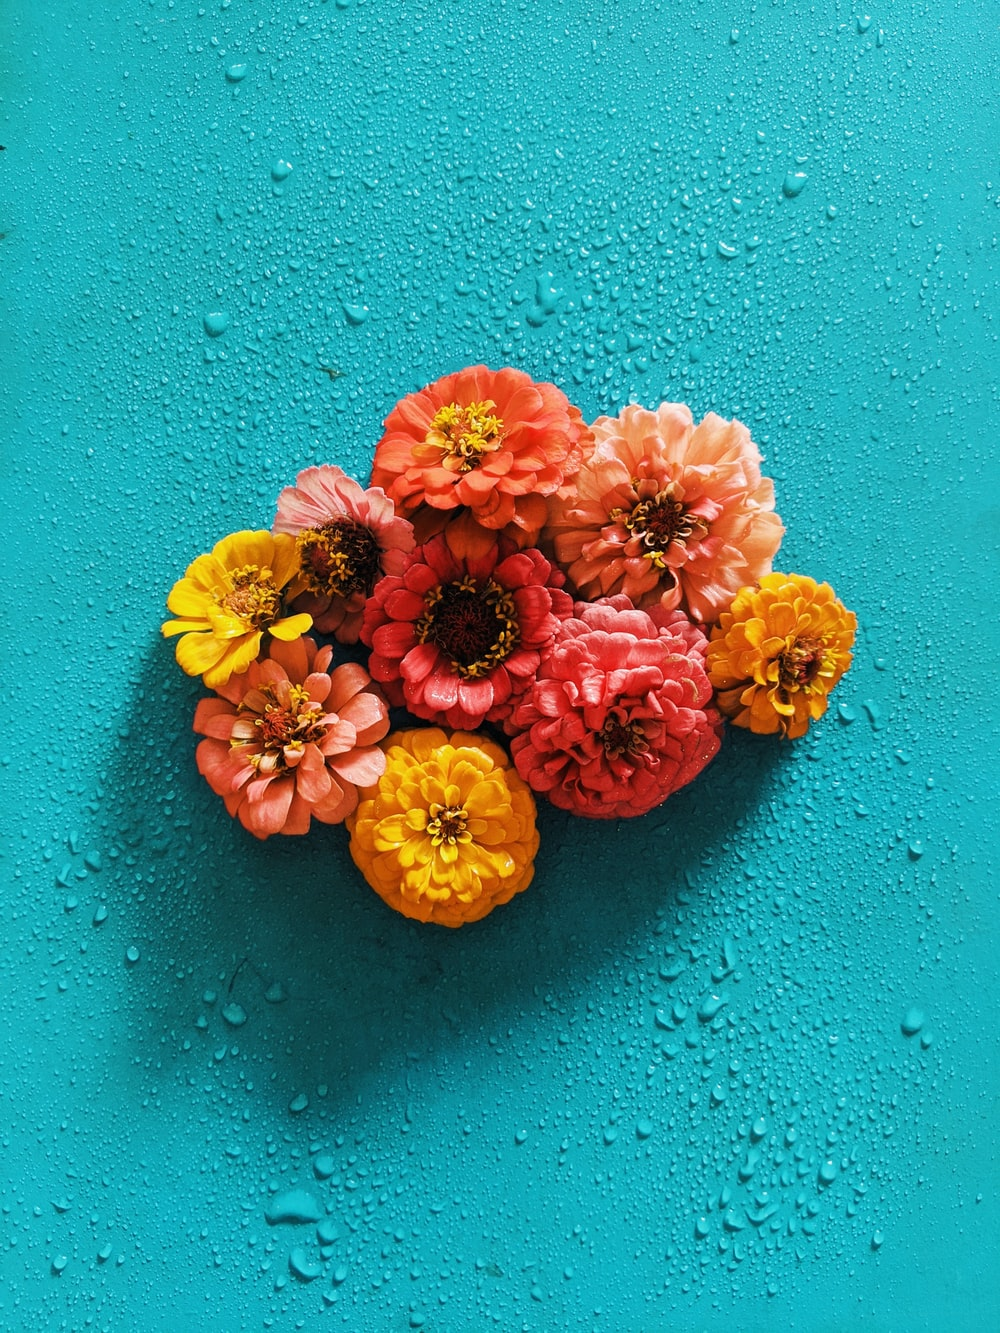 orange and yellow flowers on blue surface